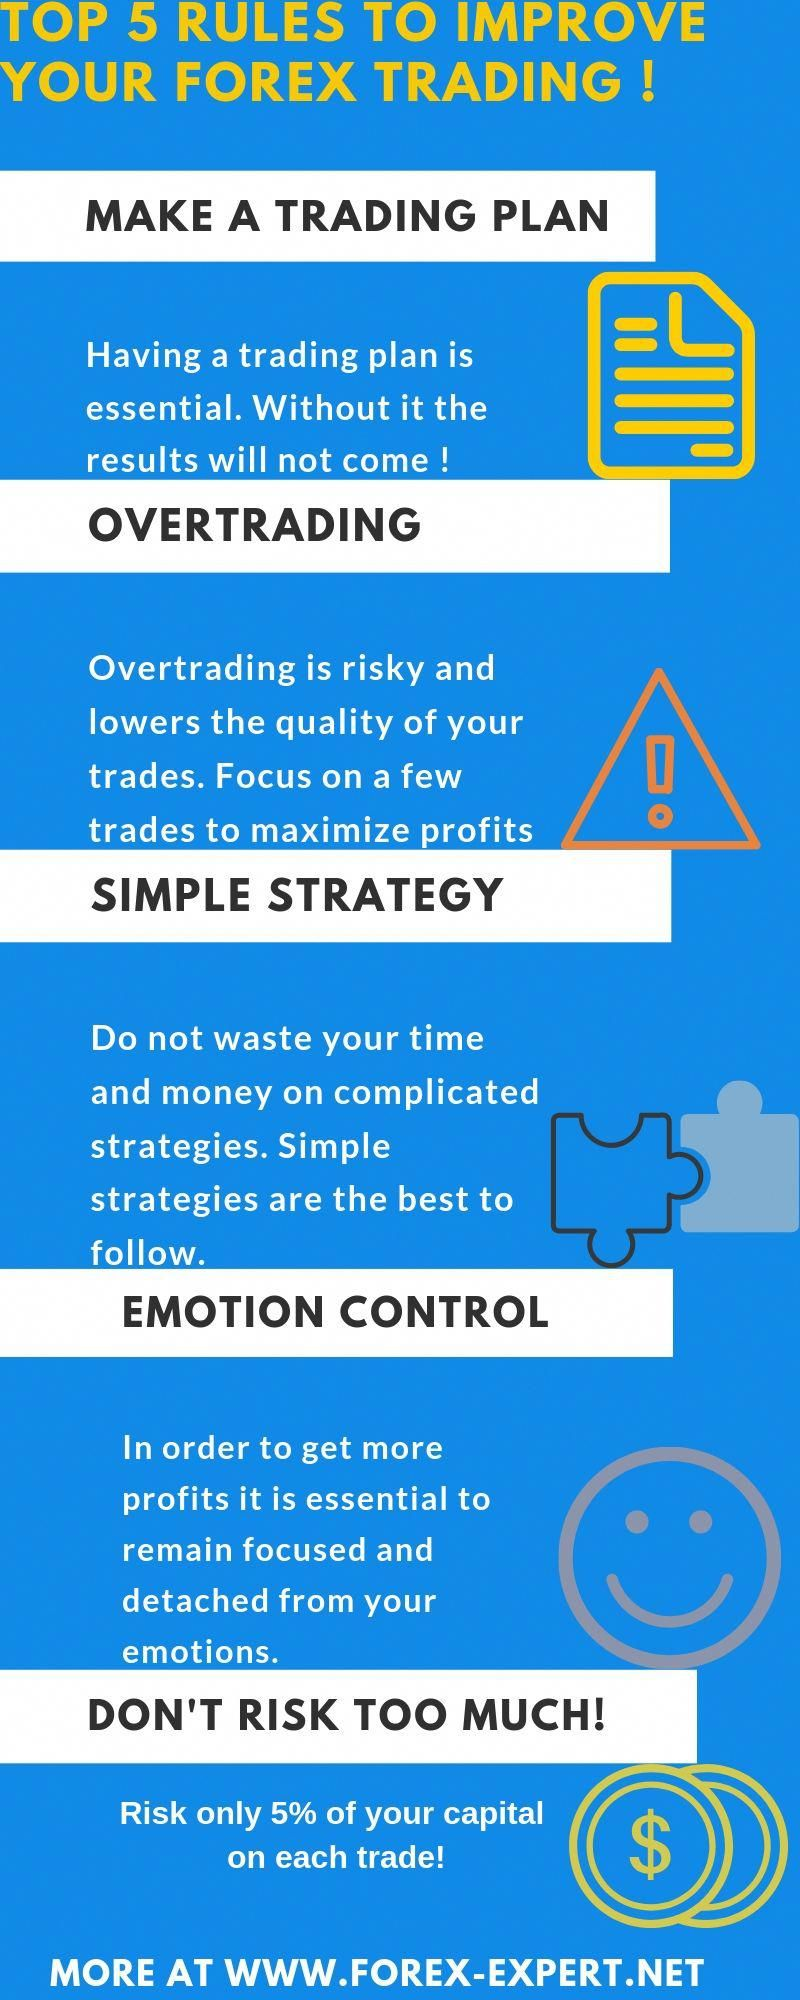 My Top 5 Rules To Improve Your Forex Trading Forex Strategy